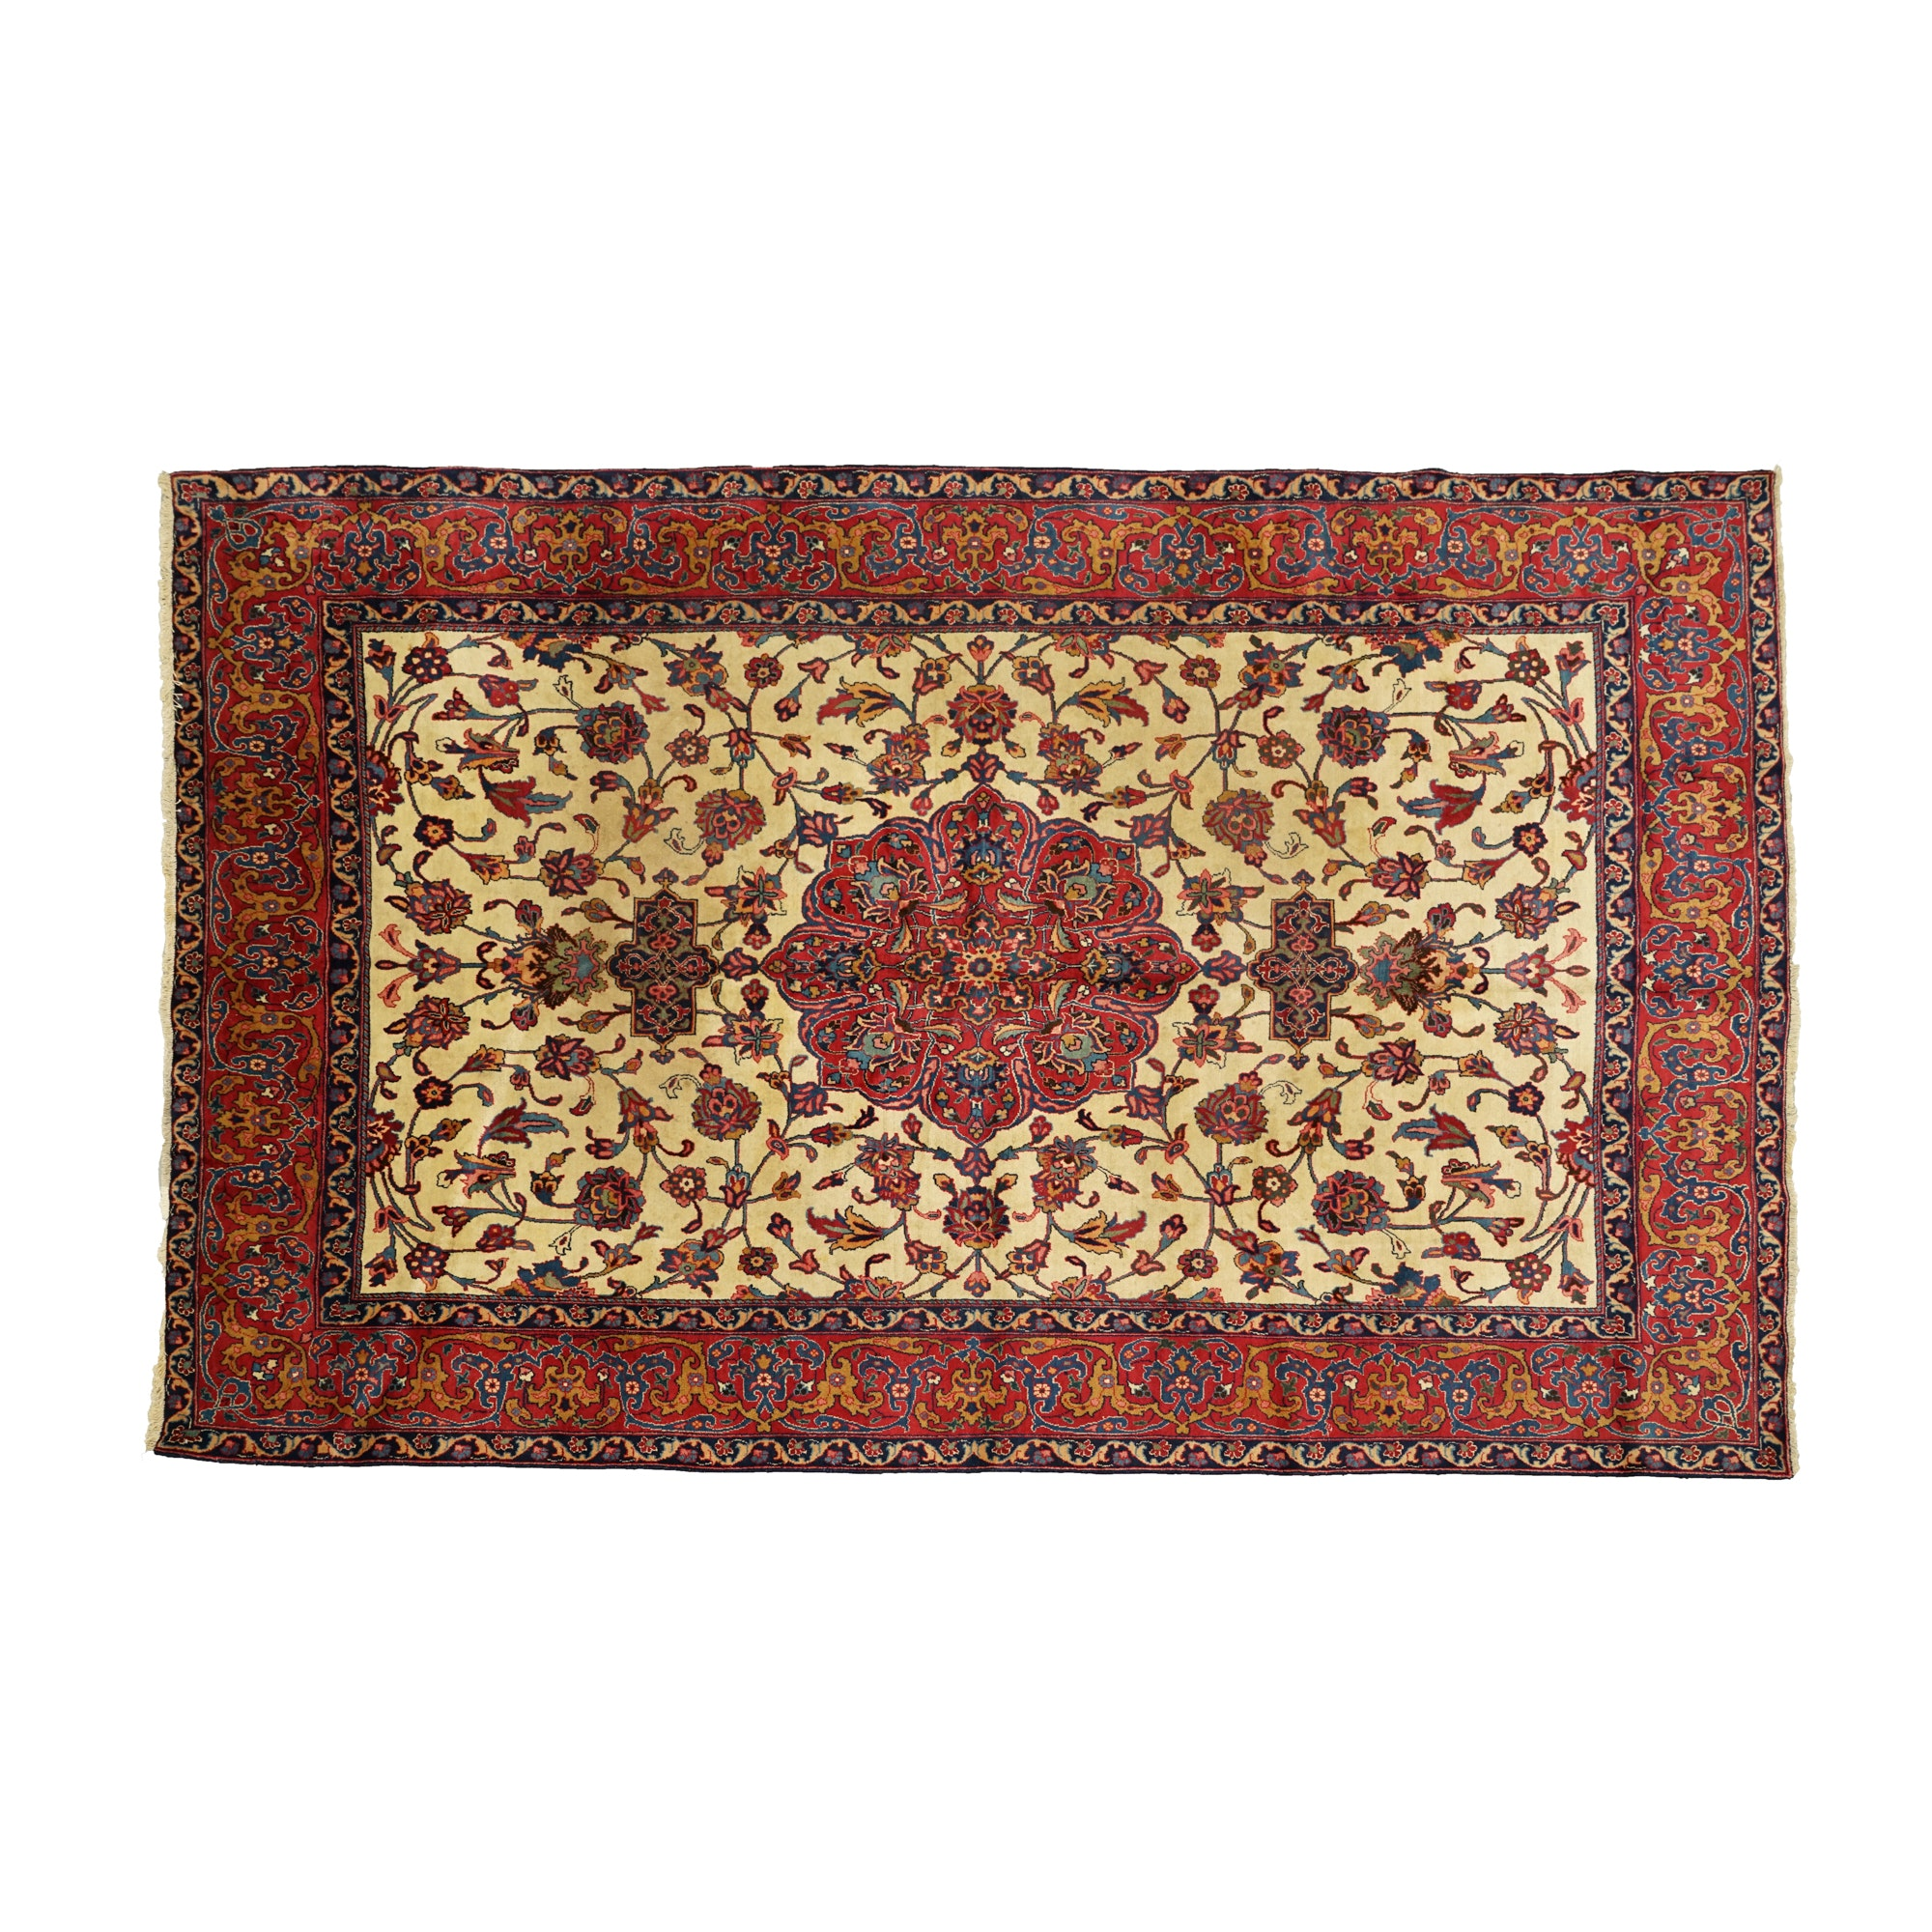 Hand-Knotted Persian Mashhad Wool Area Rug